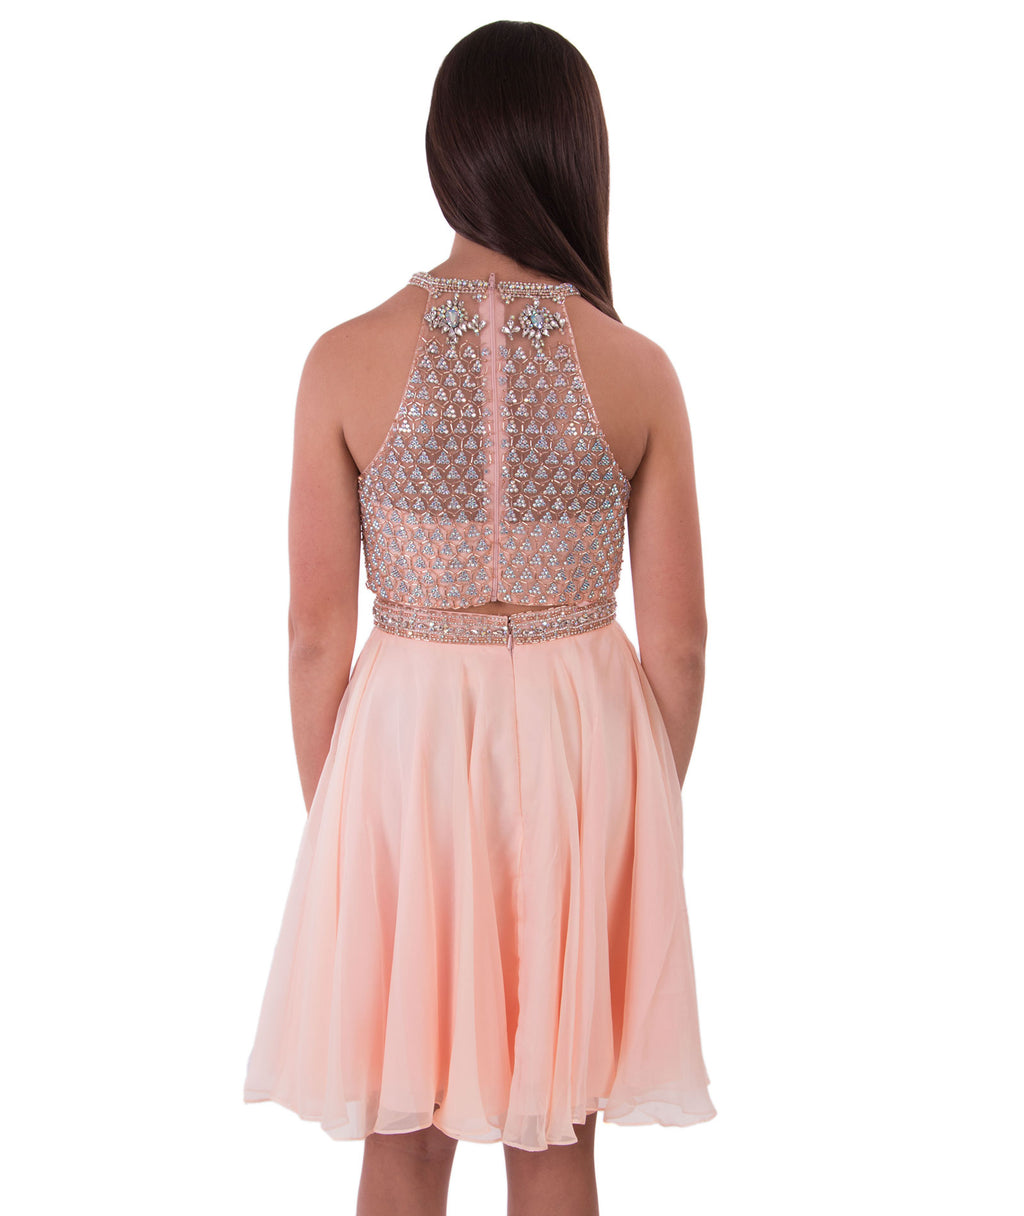 Jovani Womens Blush Two Piece Embellished Dress - Frankie's on the Park